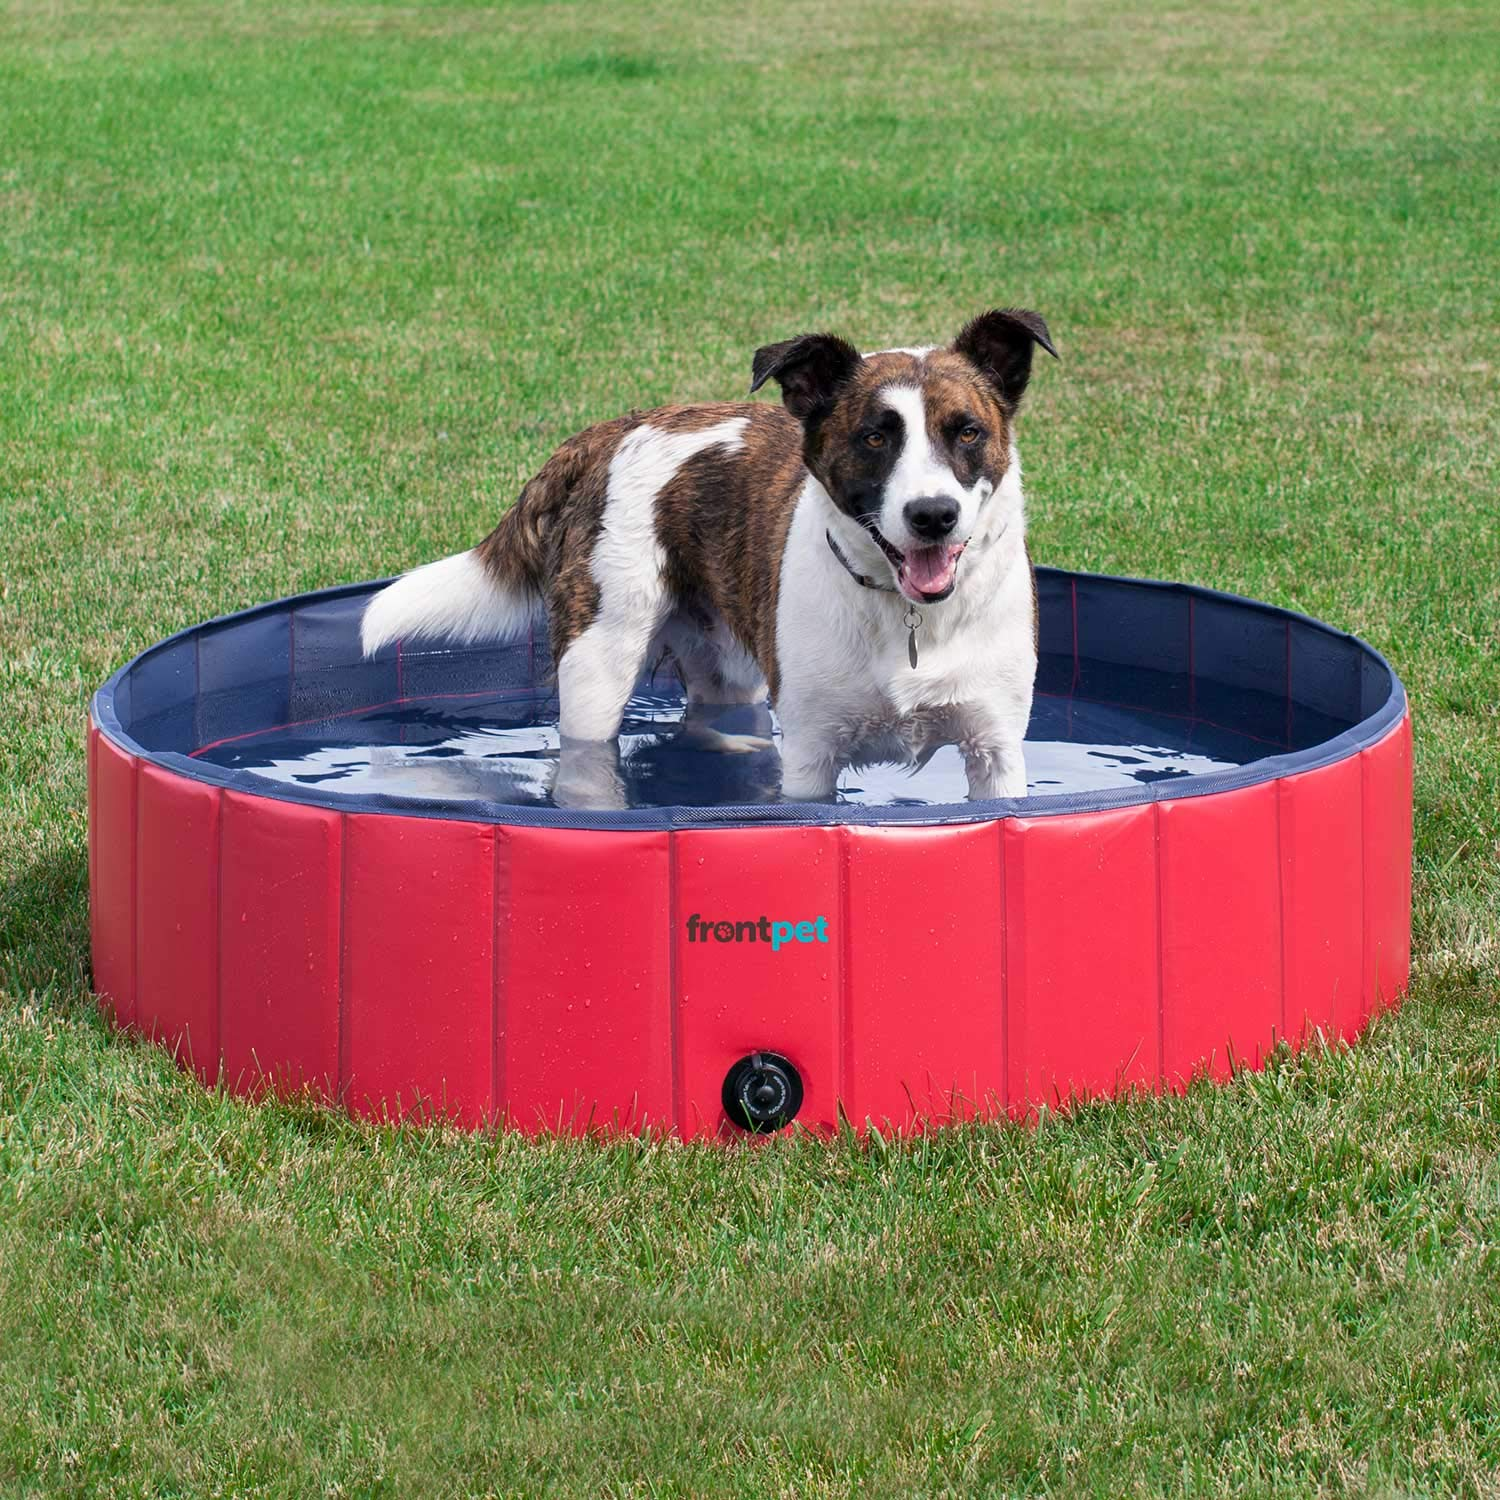 FrontPet Foldable Large Dog Pet Pool Bathing Tub, Kiddie Pool, 50 Inch X 12 Inch by FrontPet